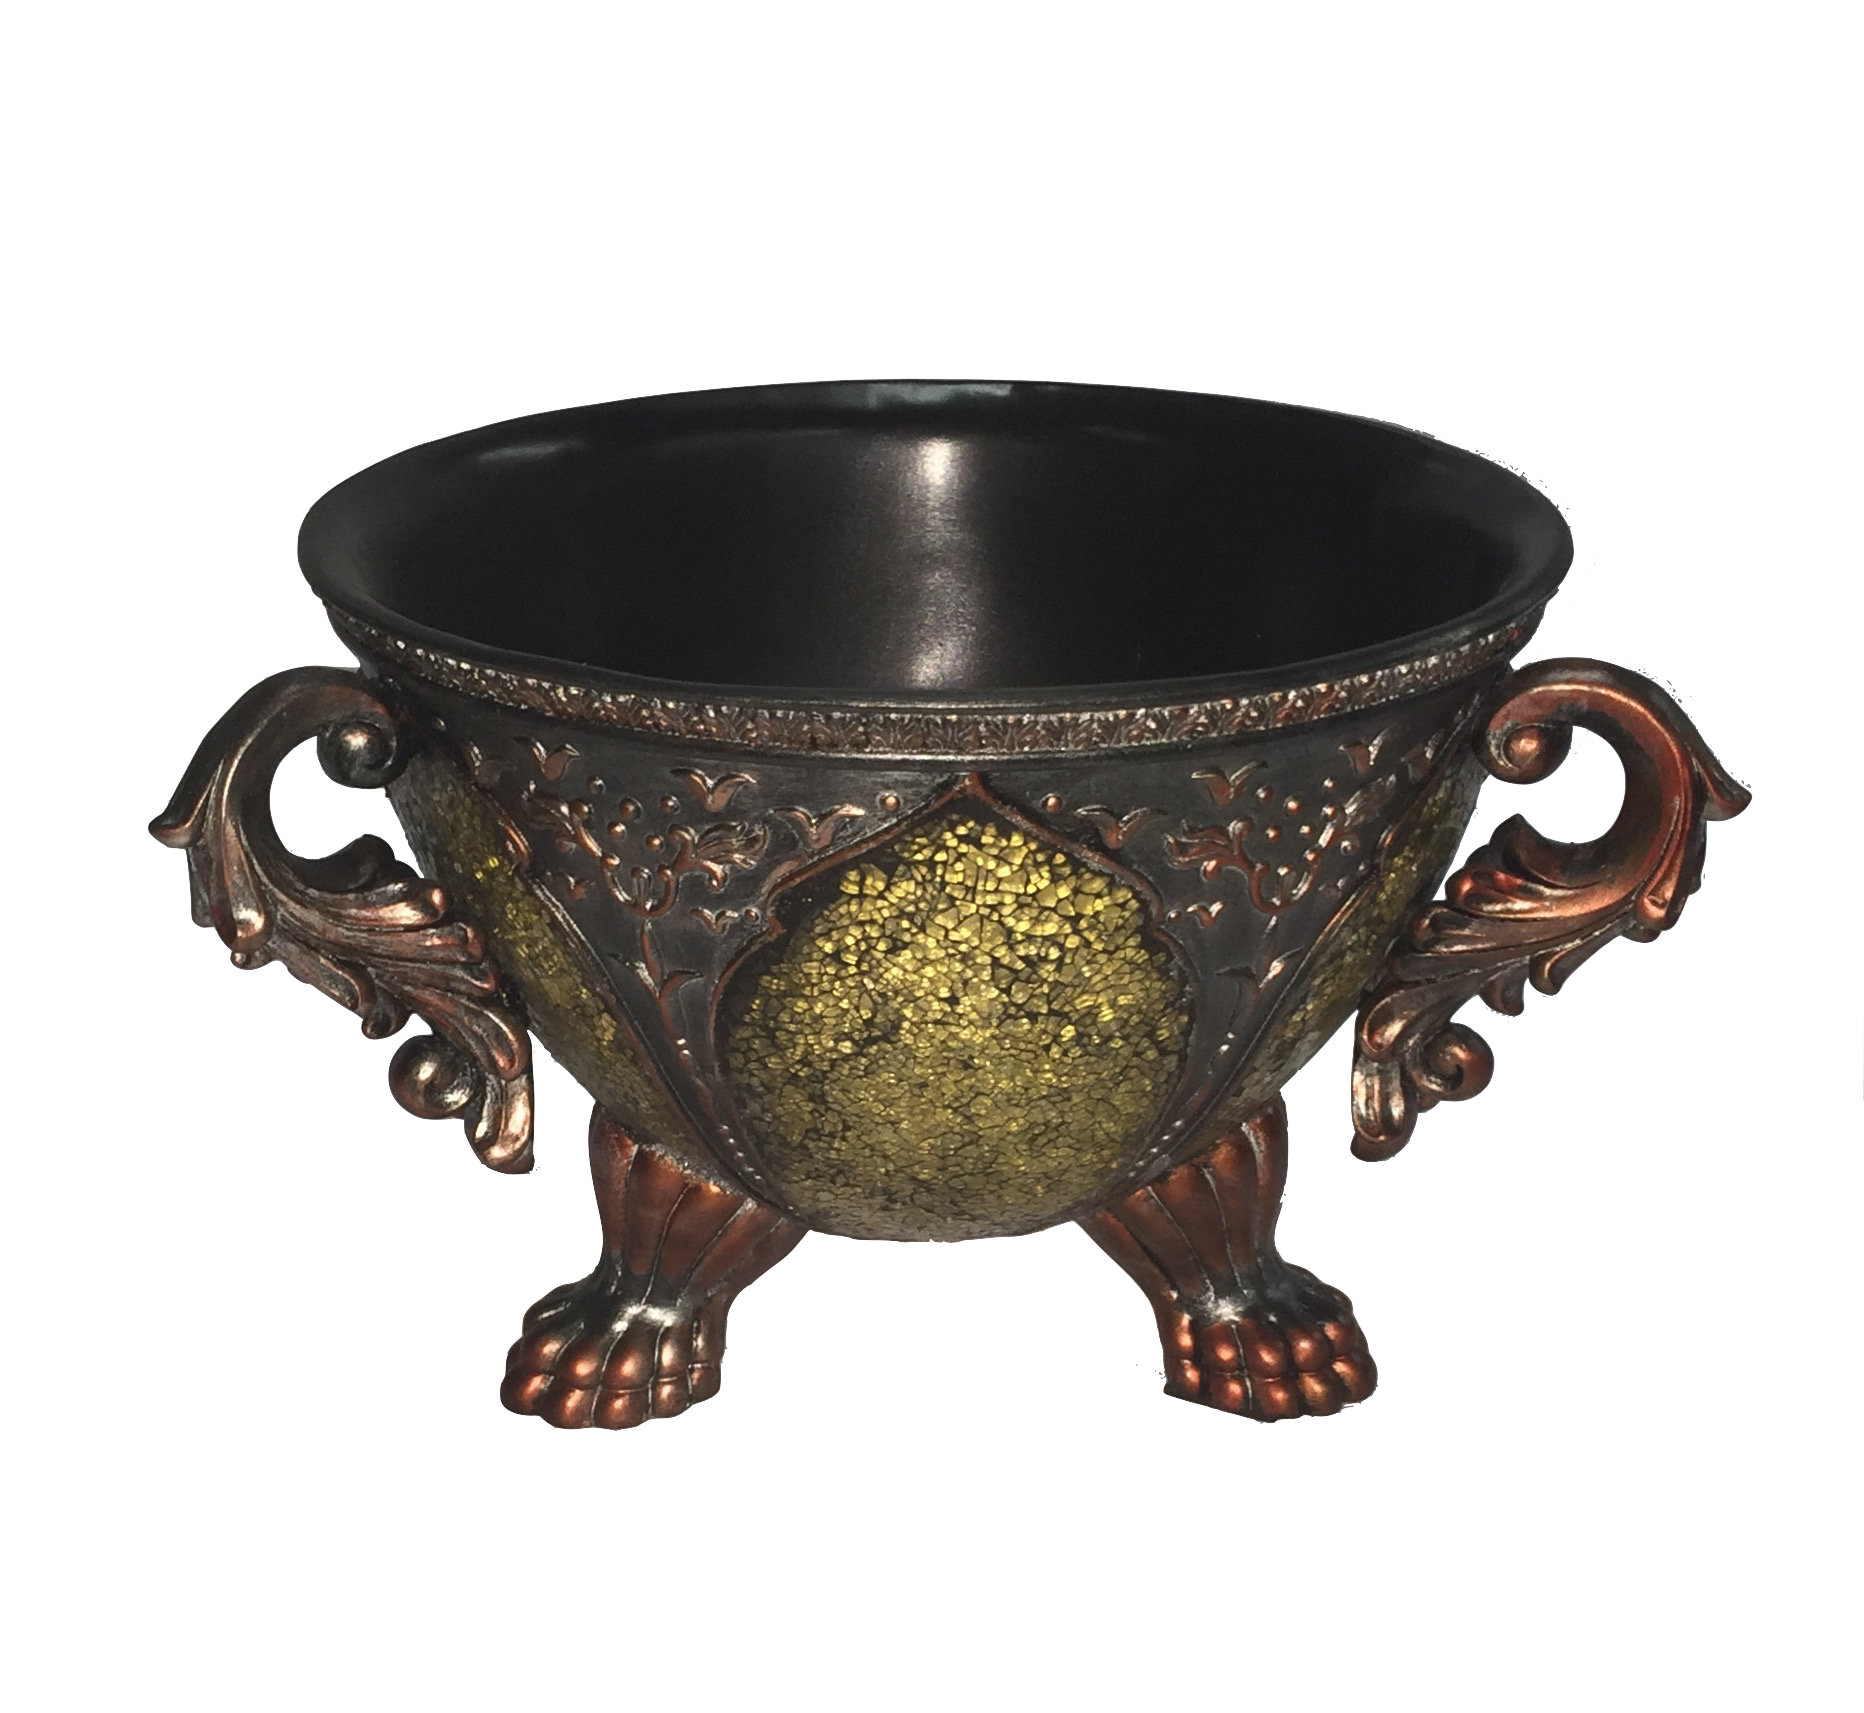 STA-B165 Decorative Bowl